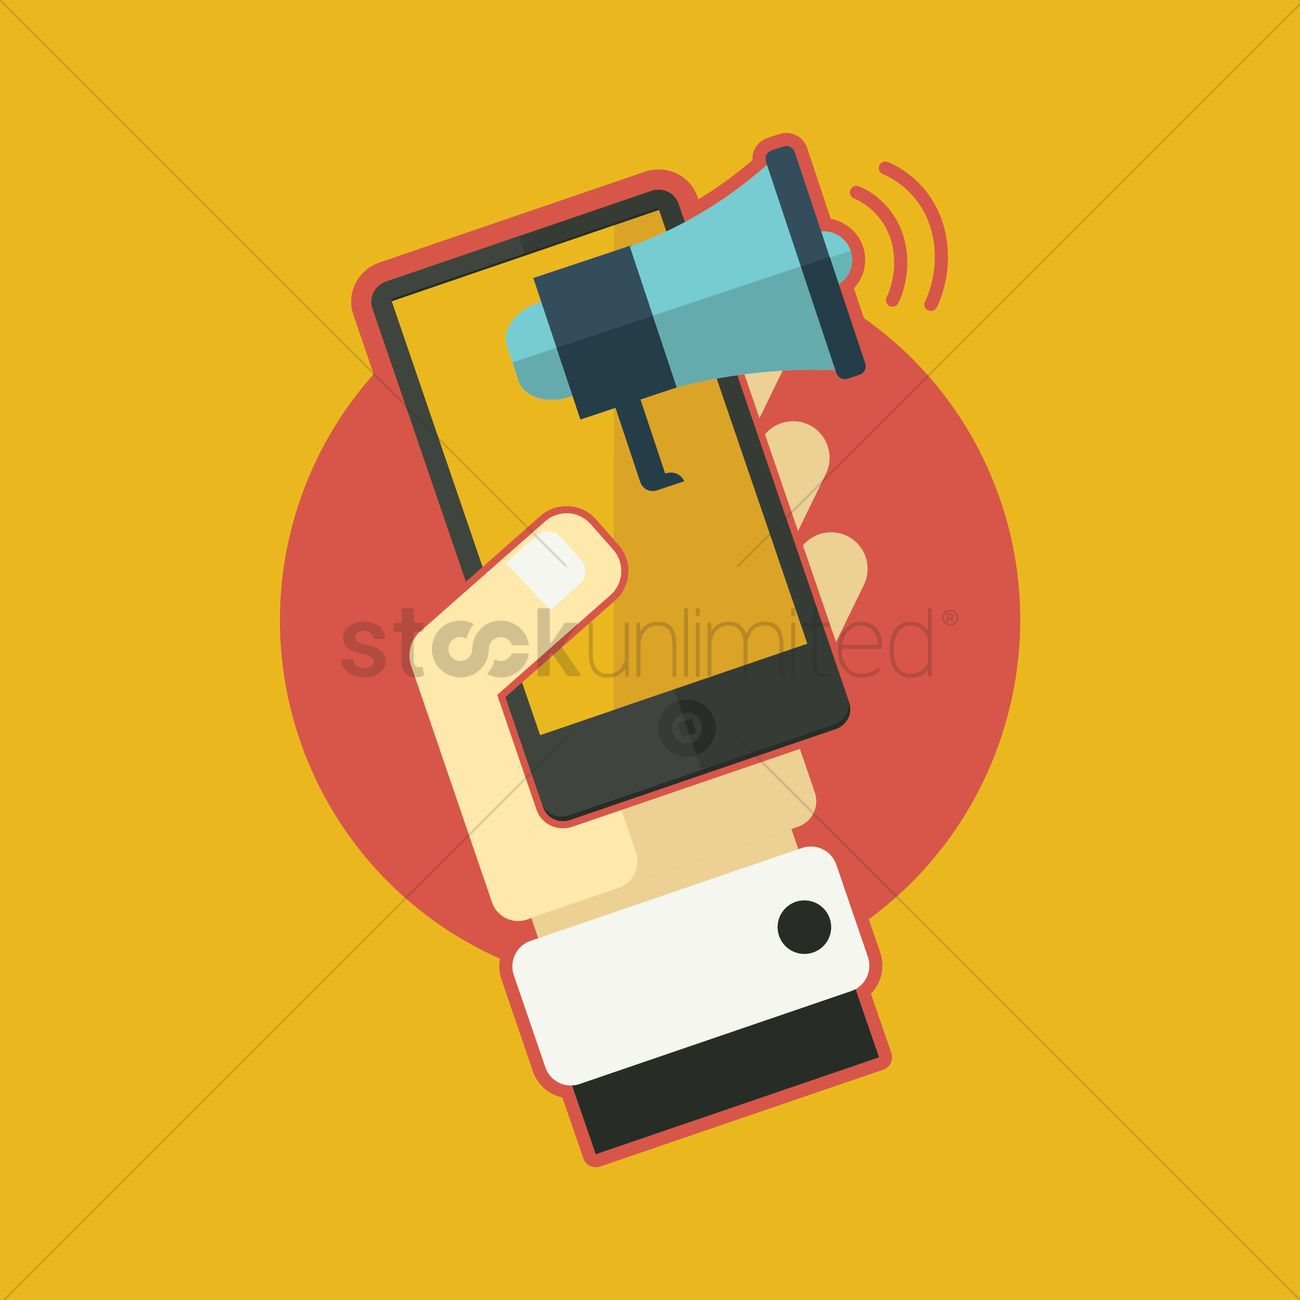 hand holding mobile phone with loudspeaker vector image 1301365 stockunlimited stockunlimited